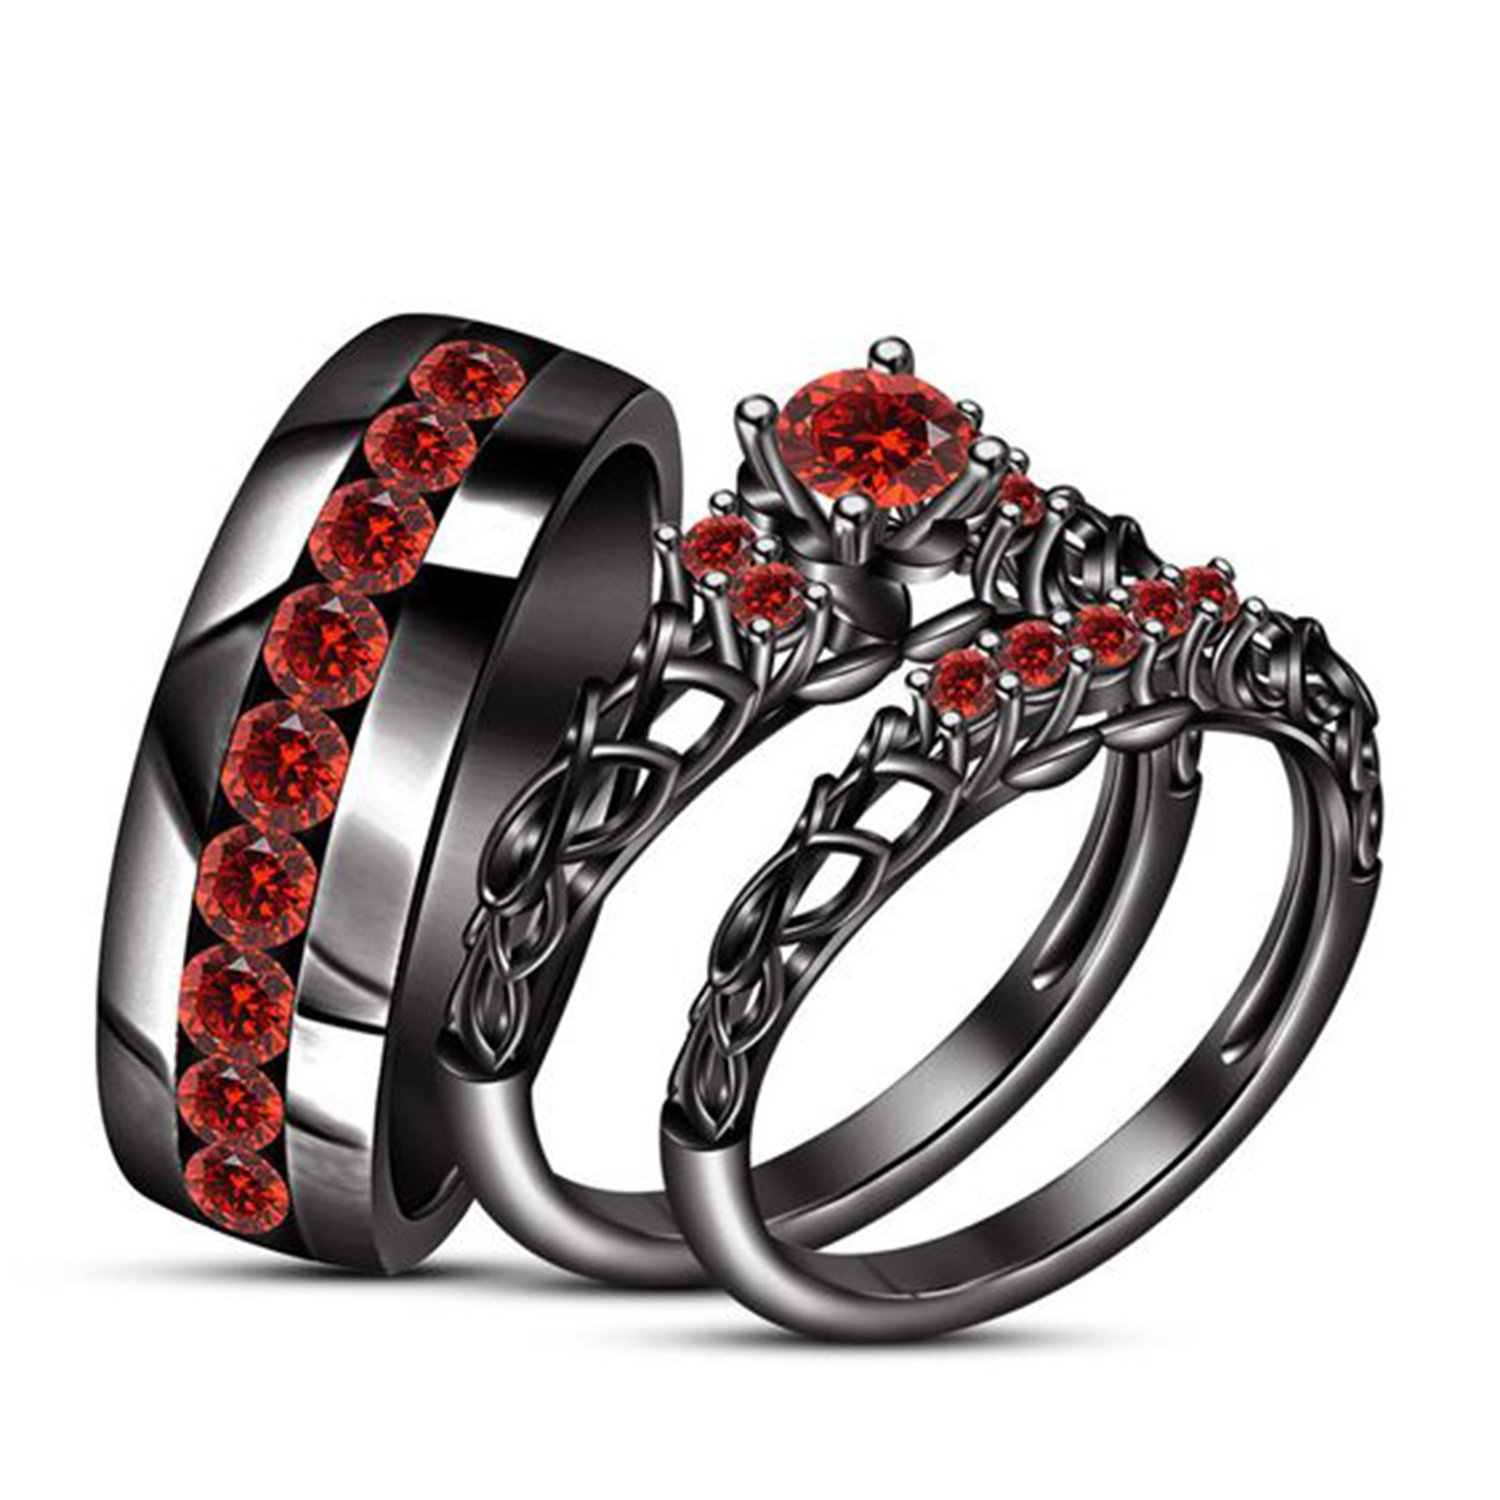 ArtLine Jewels 14k Black Gold Plated Simulated Red Ruby Studded His & Her Wedding & Engagememt Trio Ring Set